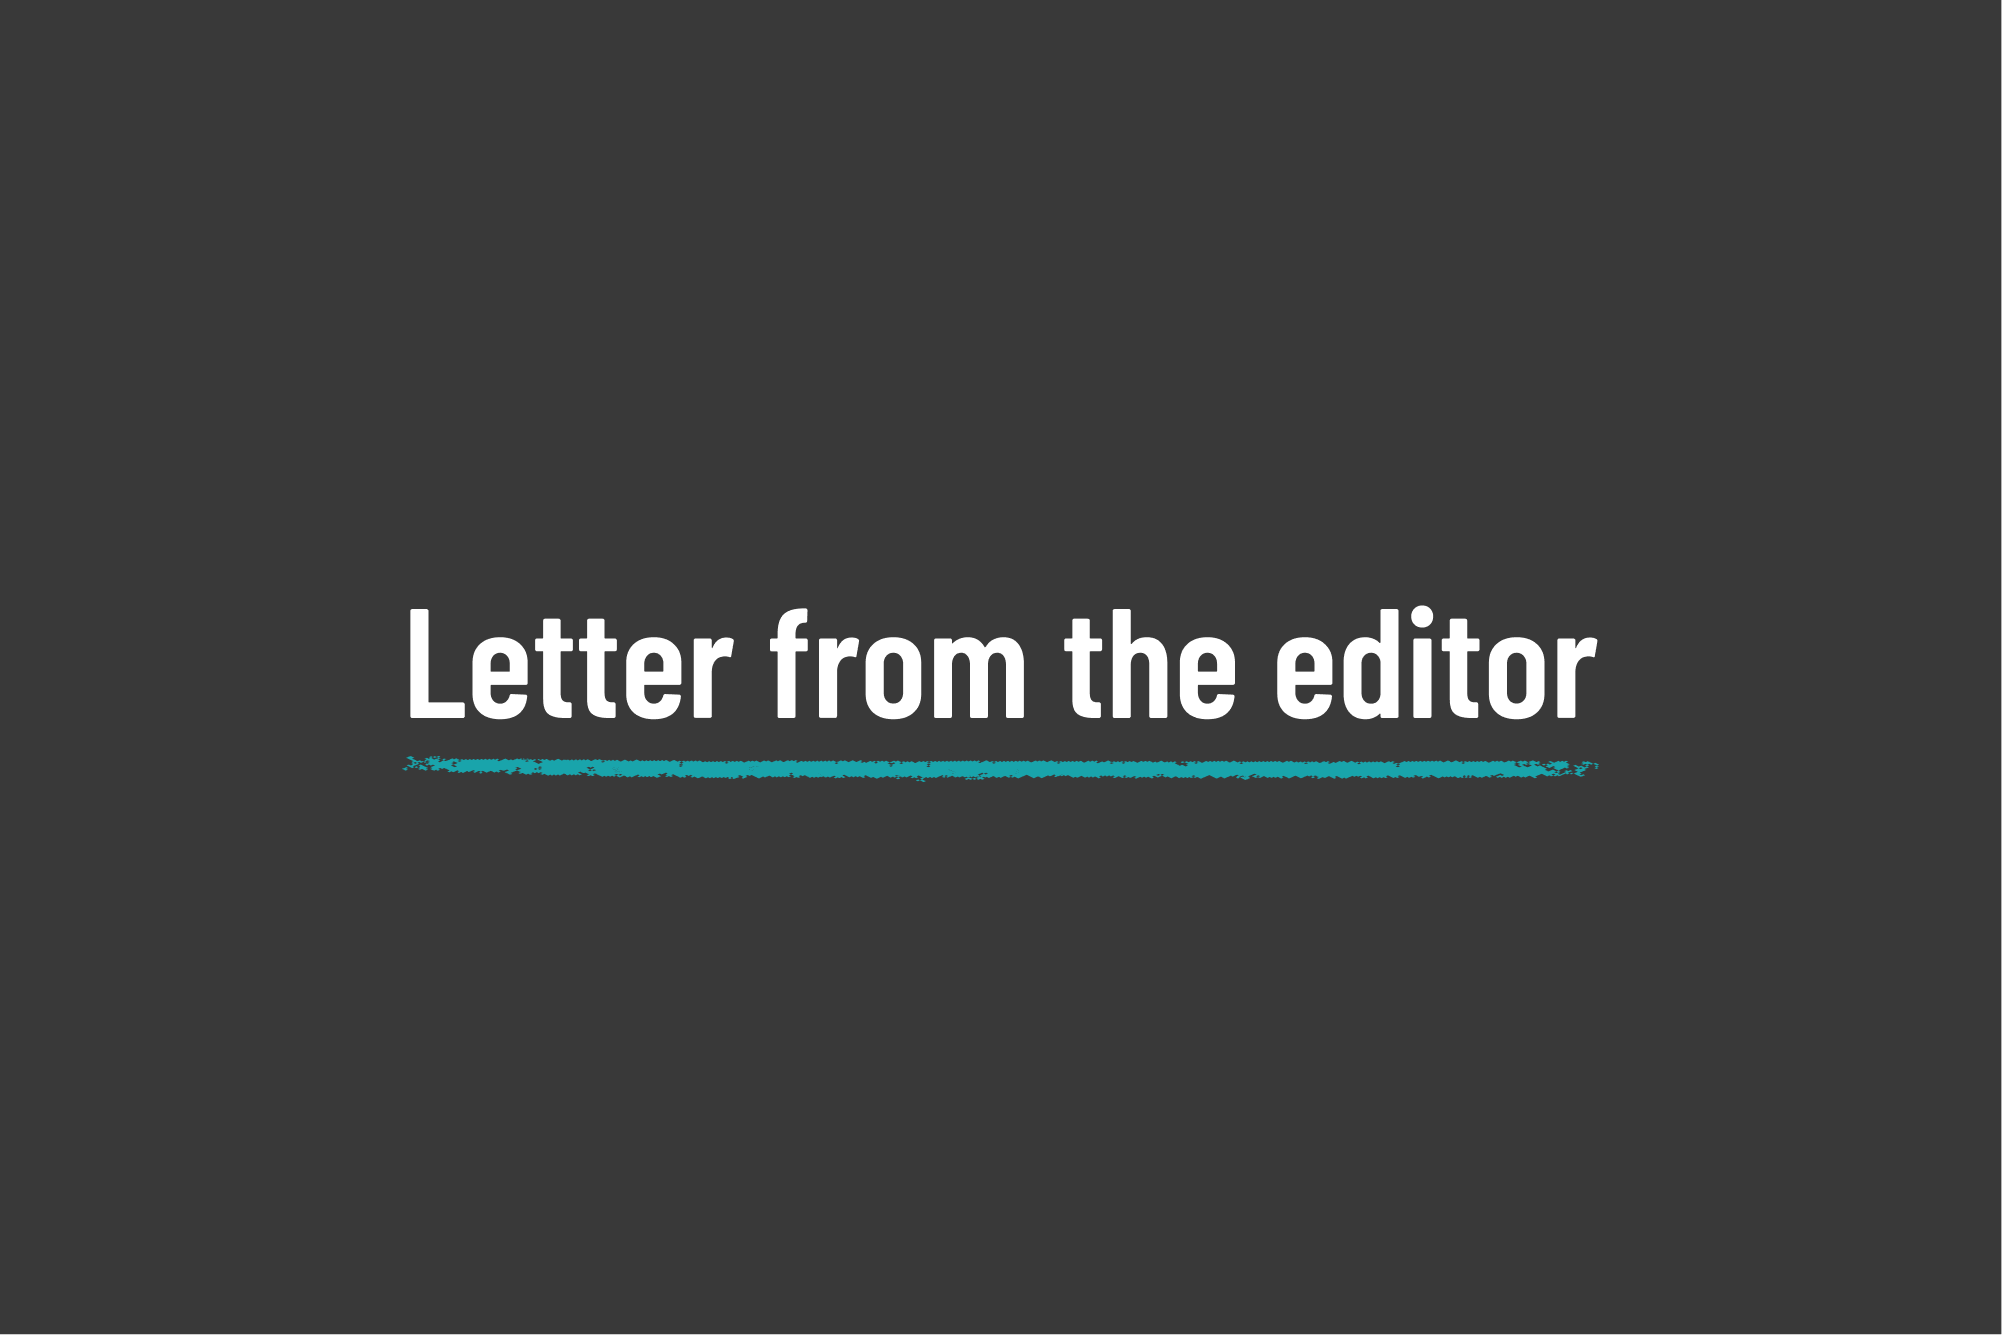 White text on a black background reads Letter from the editor